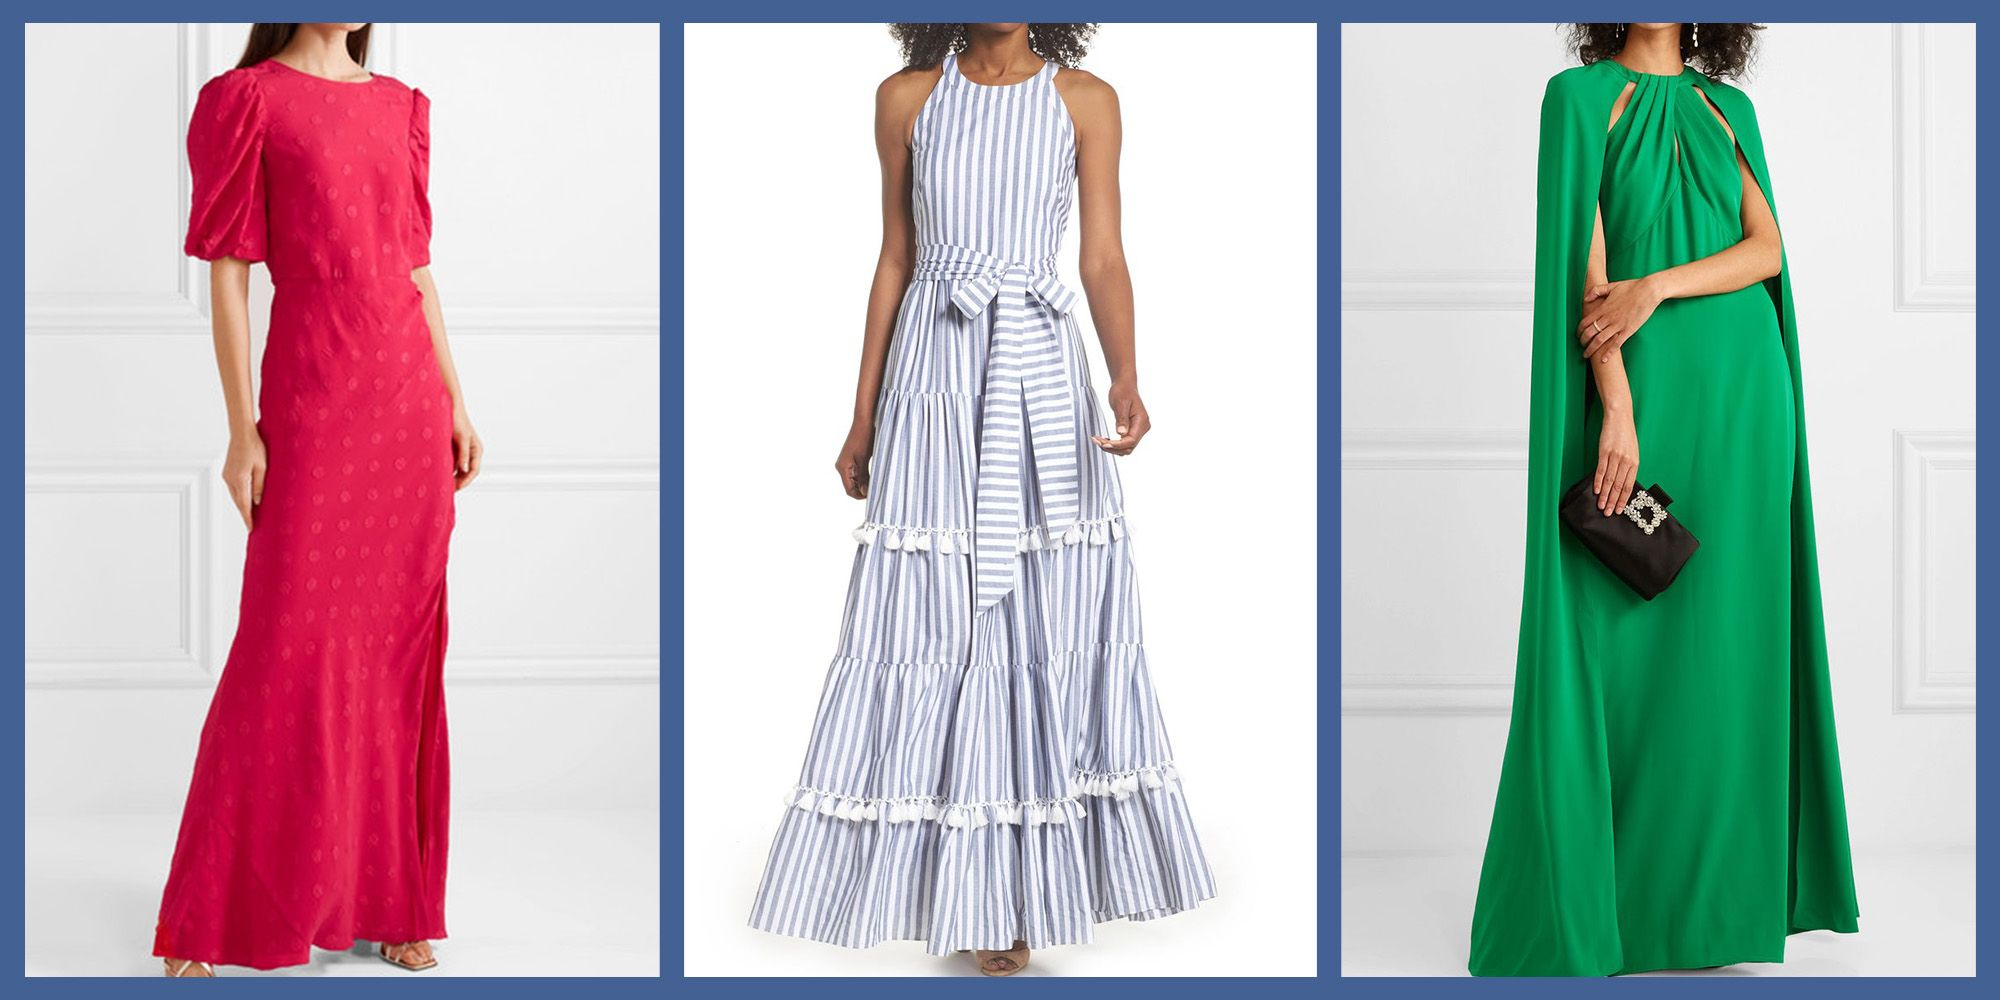 347430b0a833 What to Wear to a Summer 2019 Wedding - 15 Stylish Summer Wedding Guest  Dresses